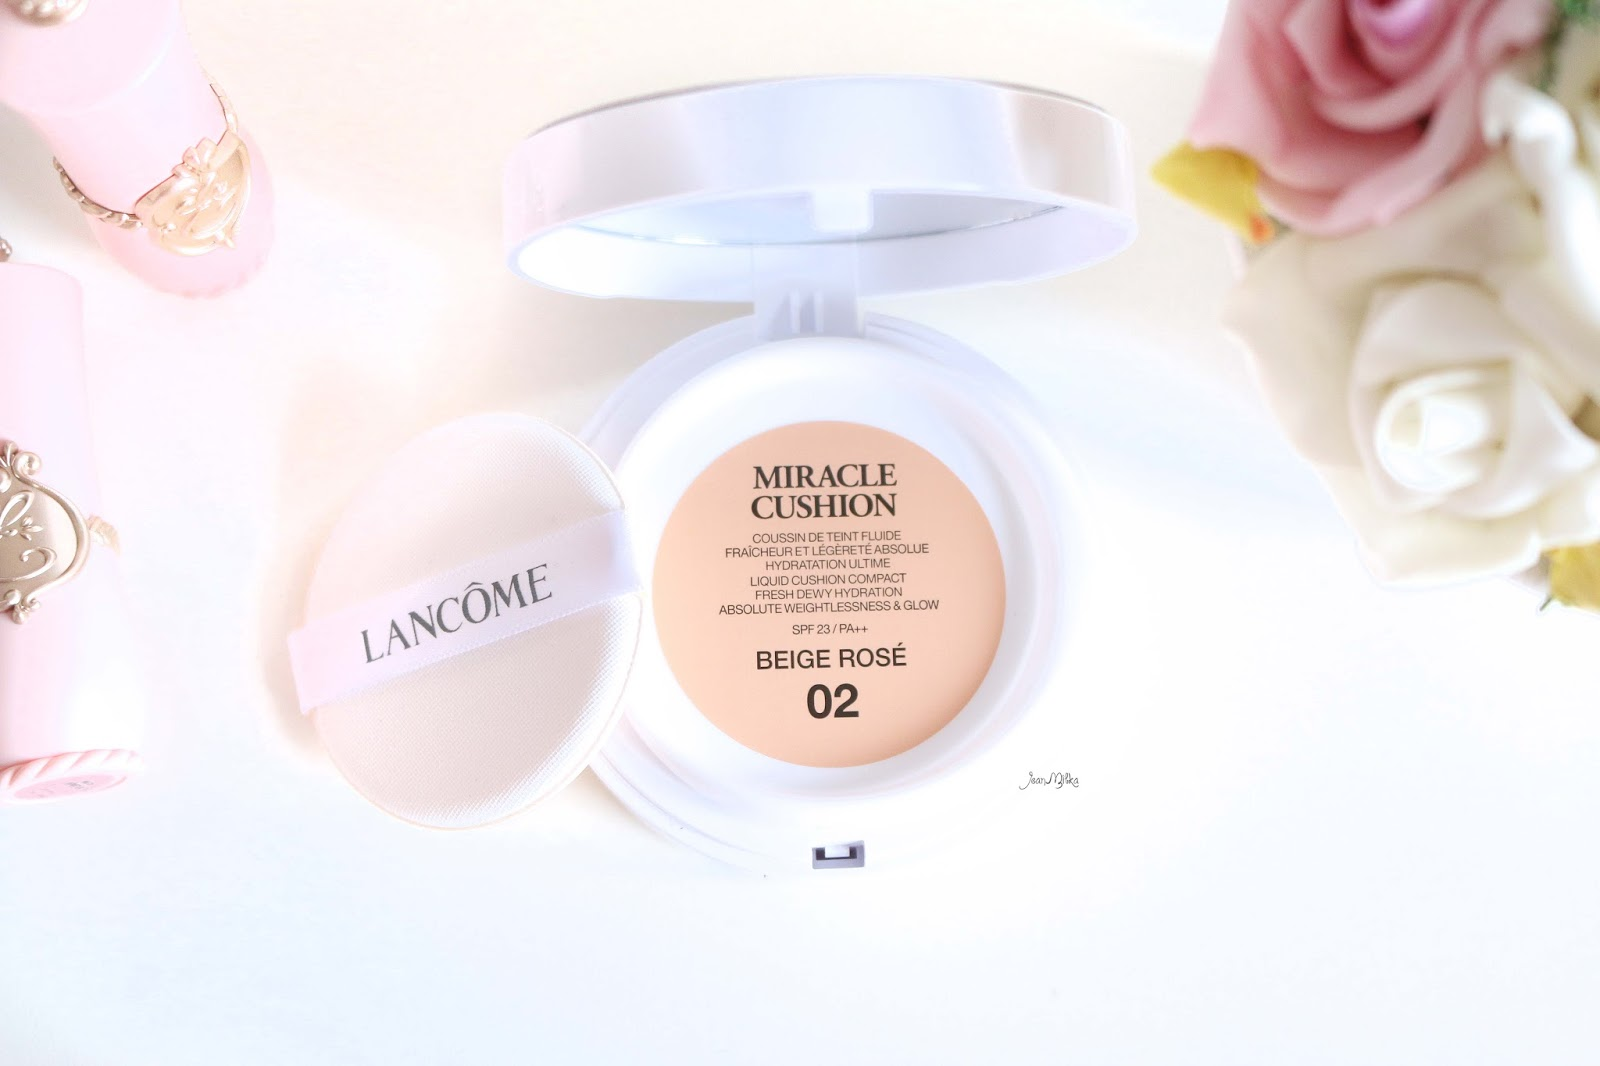 lancome, lancome miracle cushion, foundation, cushion, cushion foundation, review, swatch, limited edition, packaging, lancome, miracle cushion, beige rose, lancome miracle cushion beige rose 02